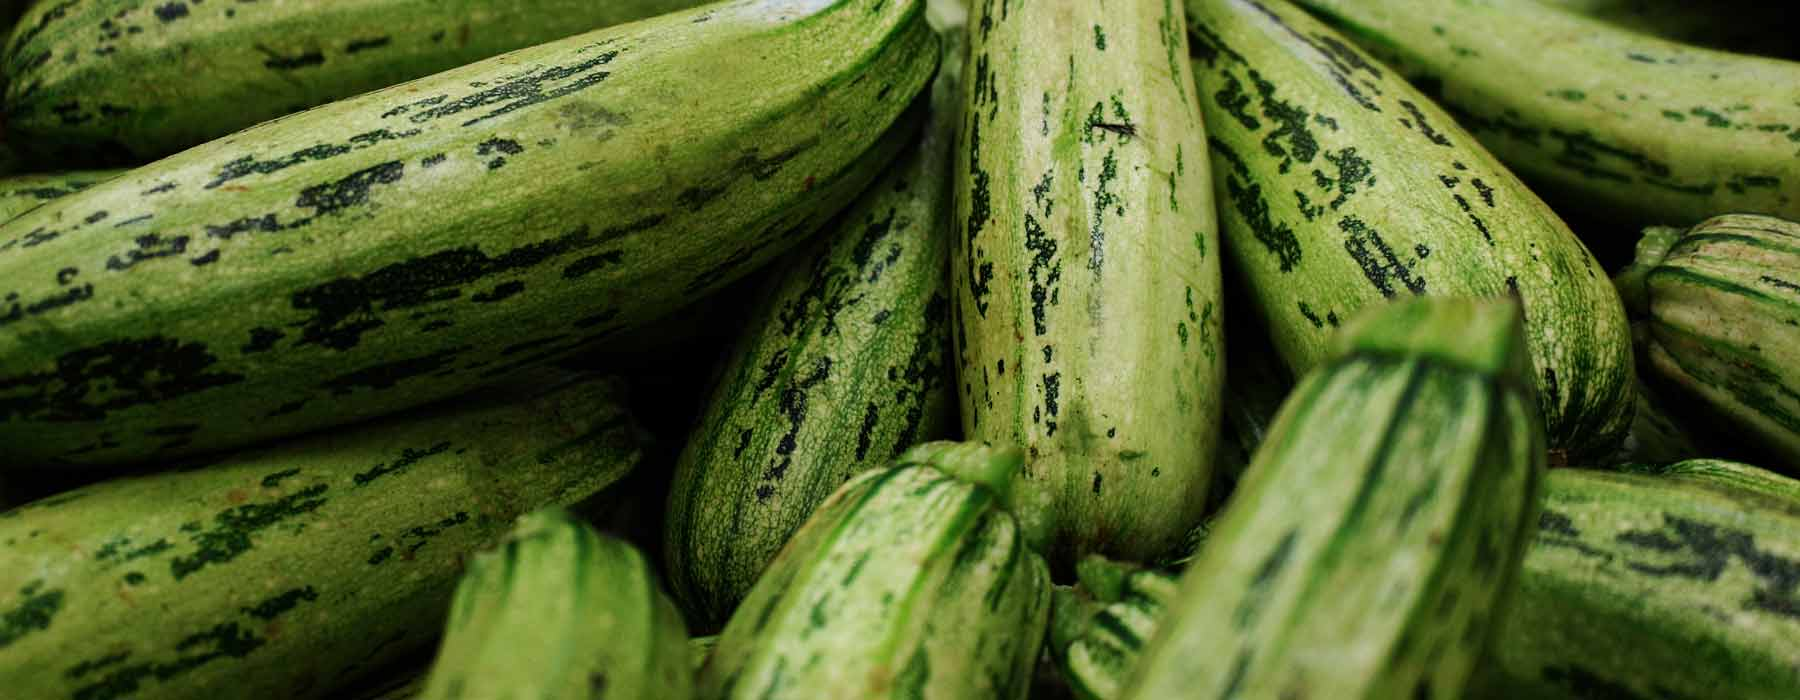 courgettes, also known as zucchini